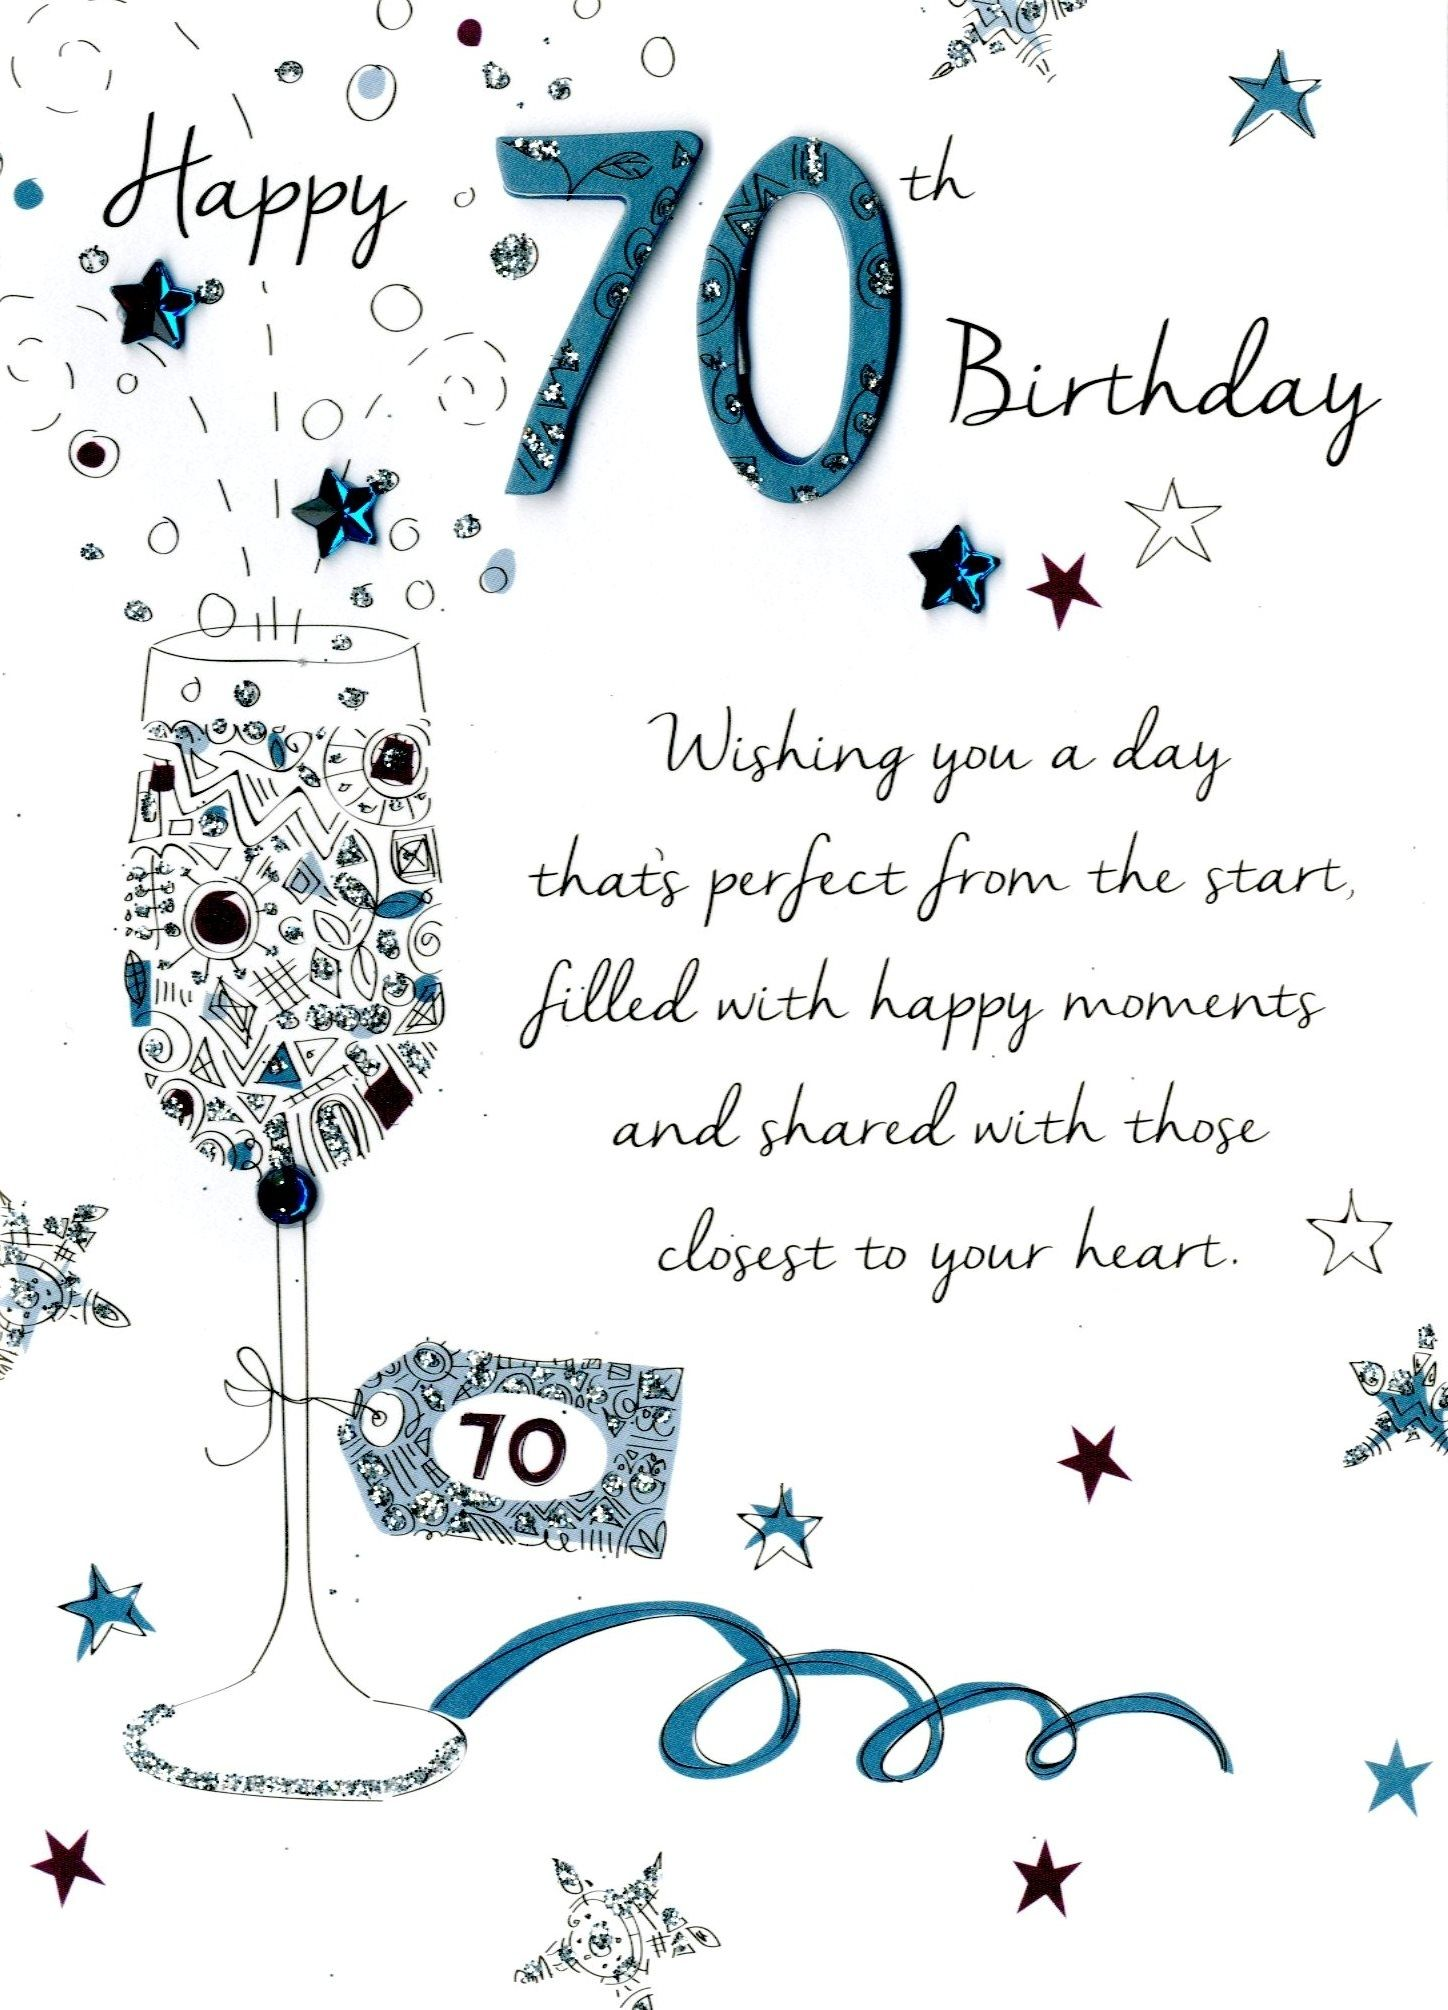 70th Birthday Wishes Pertaining To Trending This Year Birthday Ideas Make It 70th Birthday Card 70th Birthday Birthday Greeting Cards